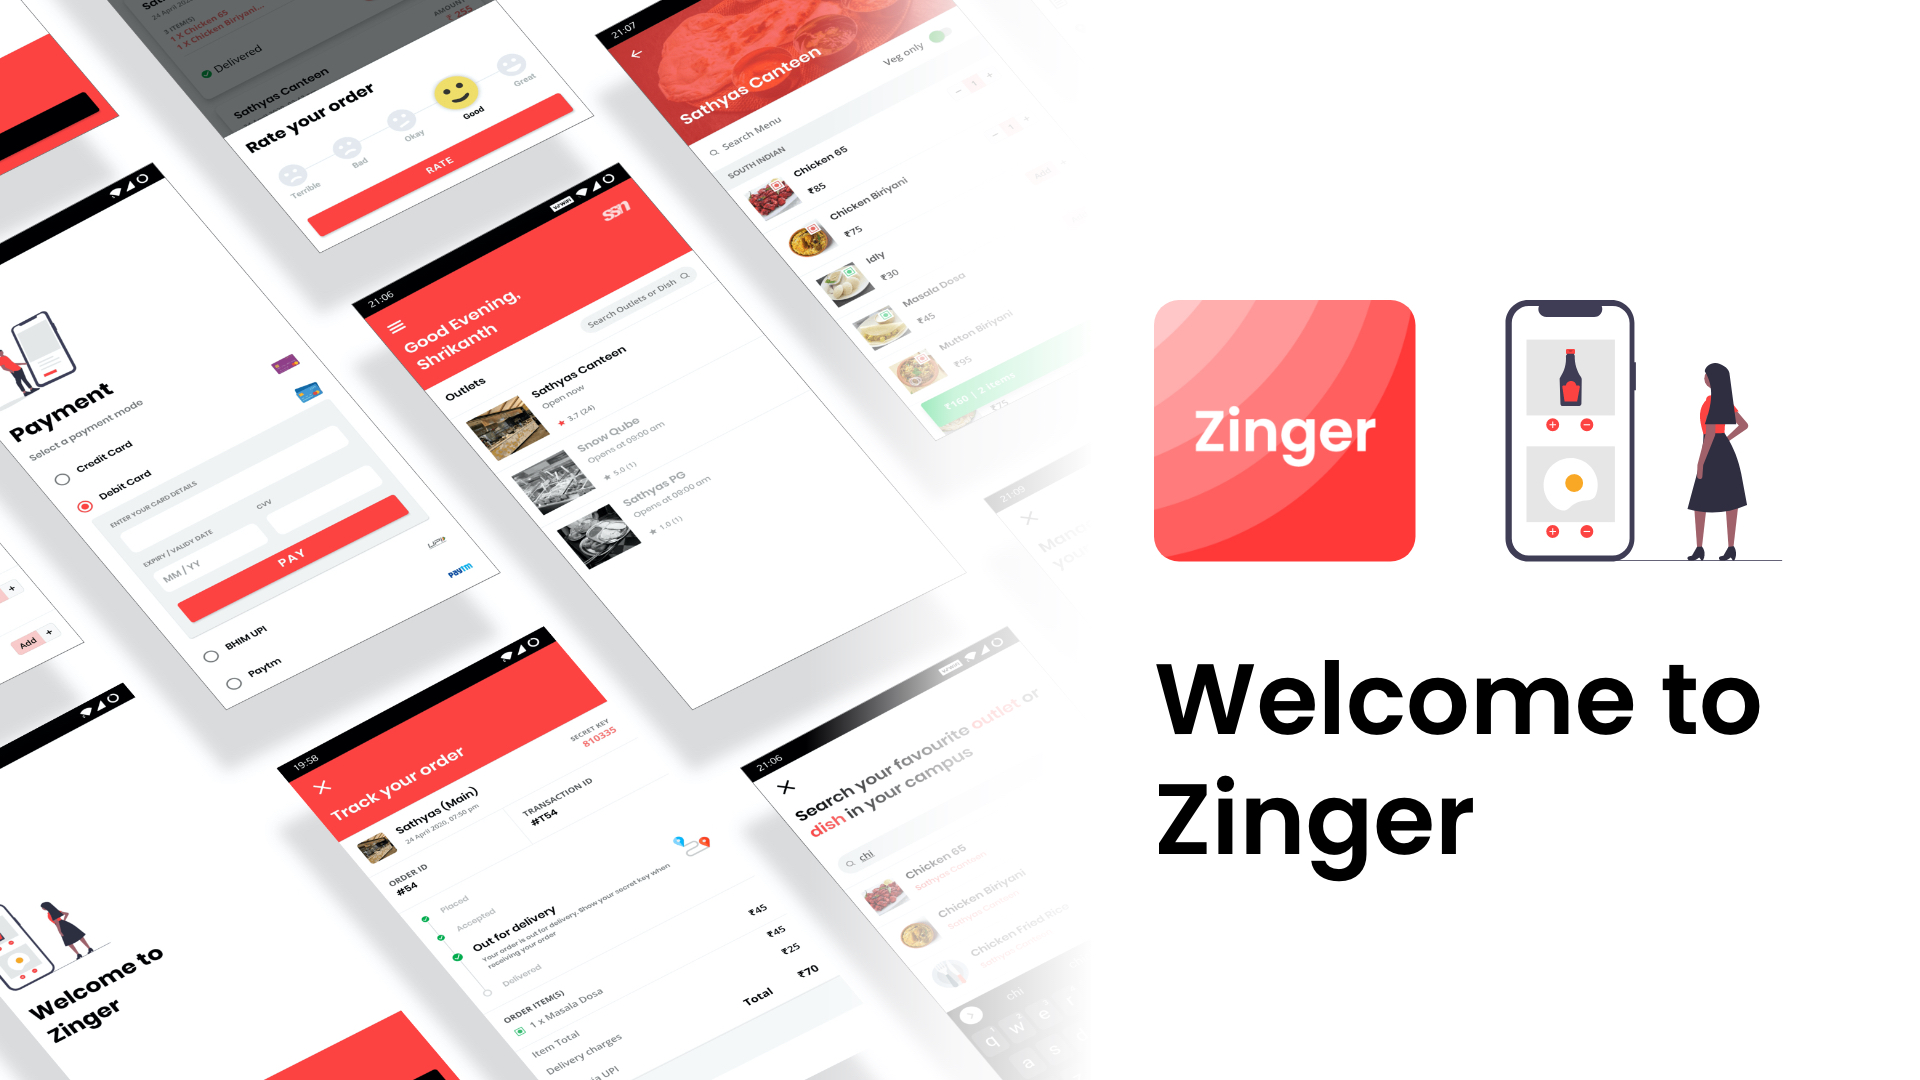 Zinger Android App